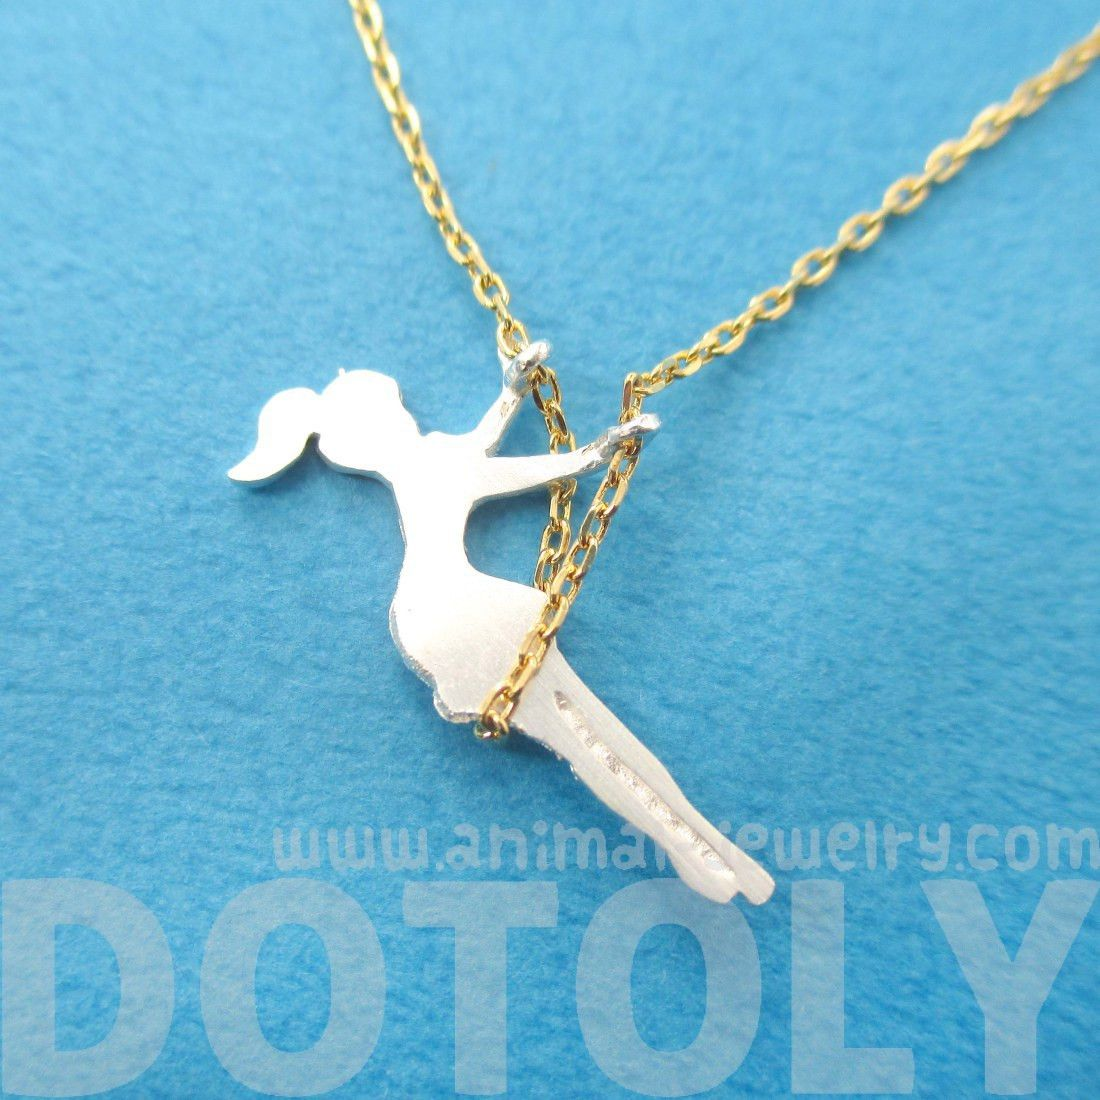 Girl Swinging on a Swing Acrobat Charm Necklace in Gold and Silver